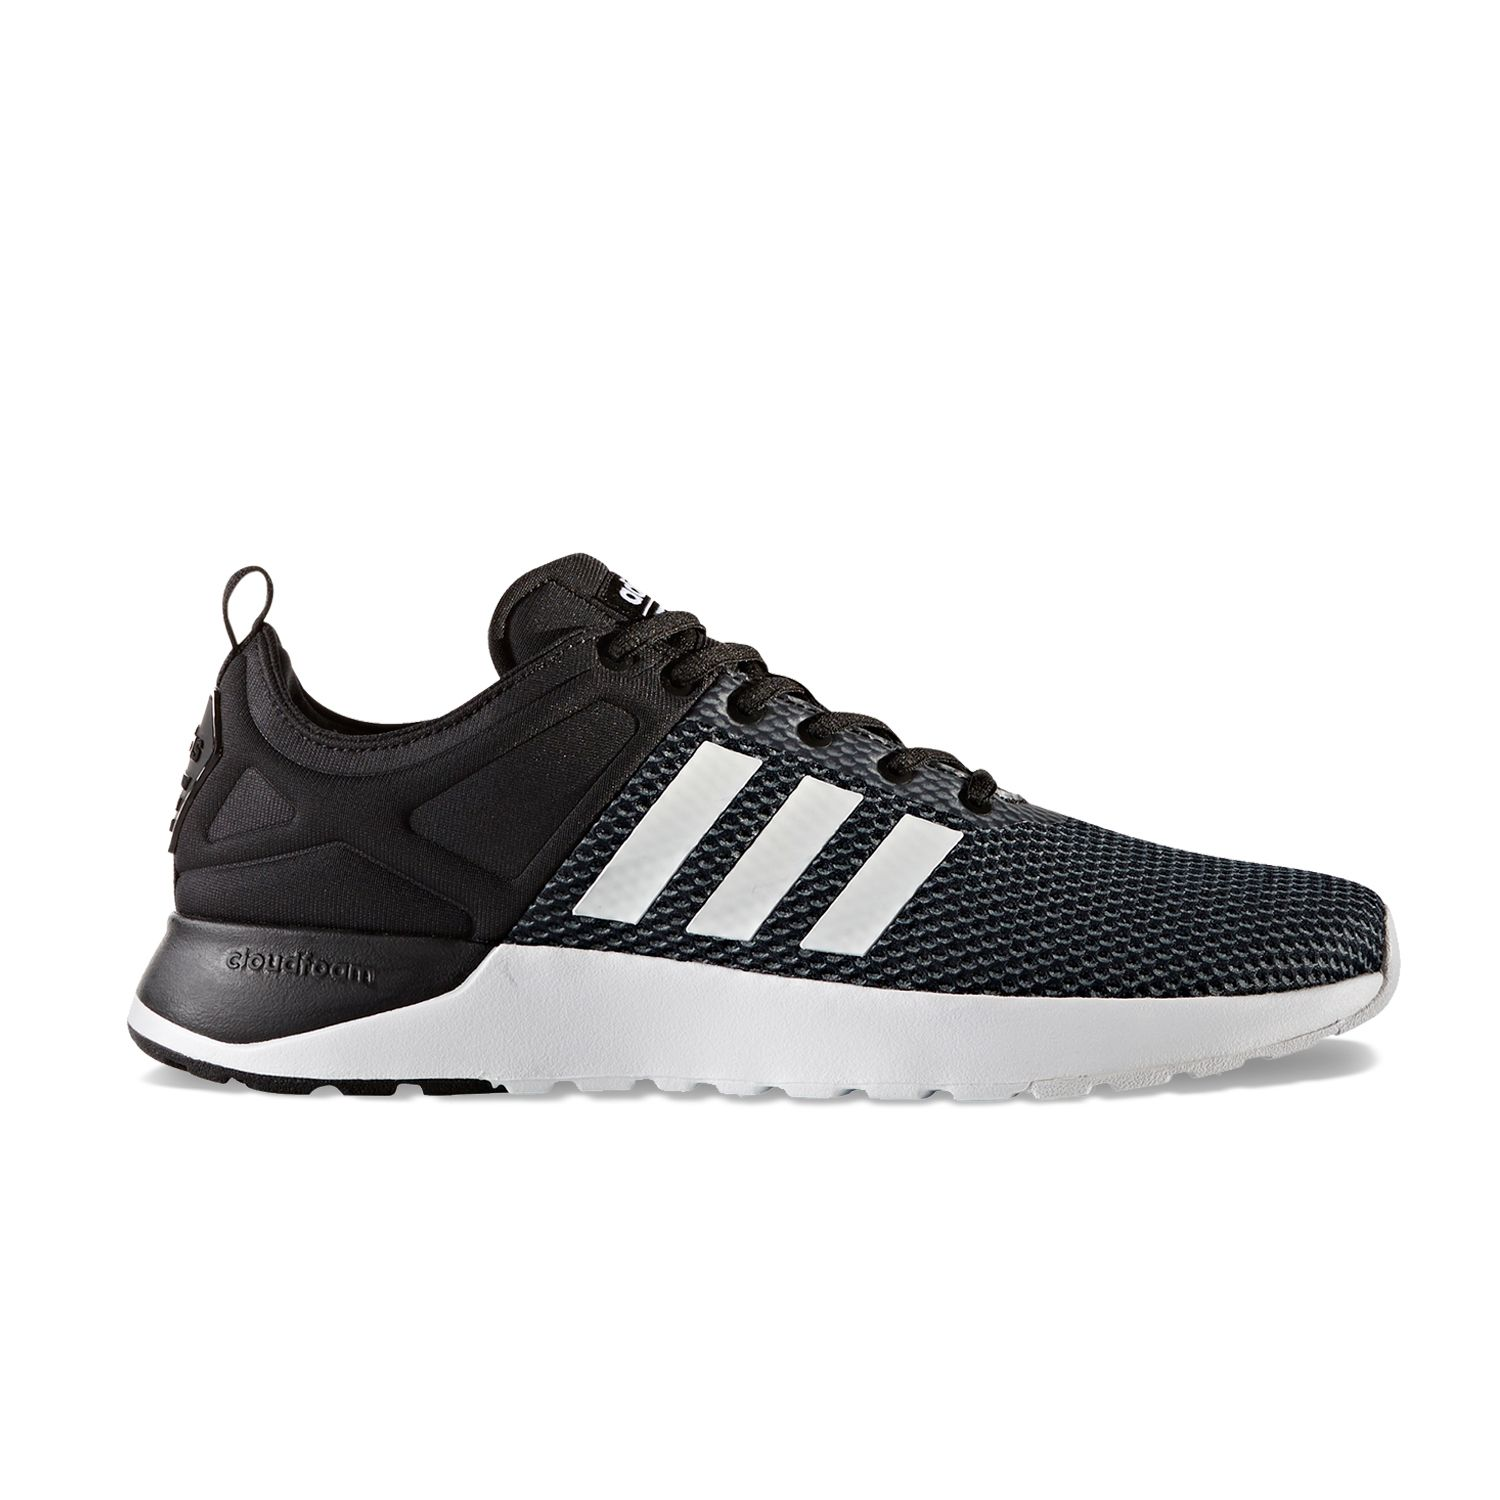 adidas NEO Cloudfoam Super Racer Men\u0027s Shoes